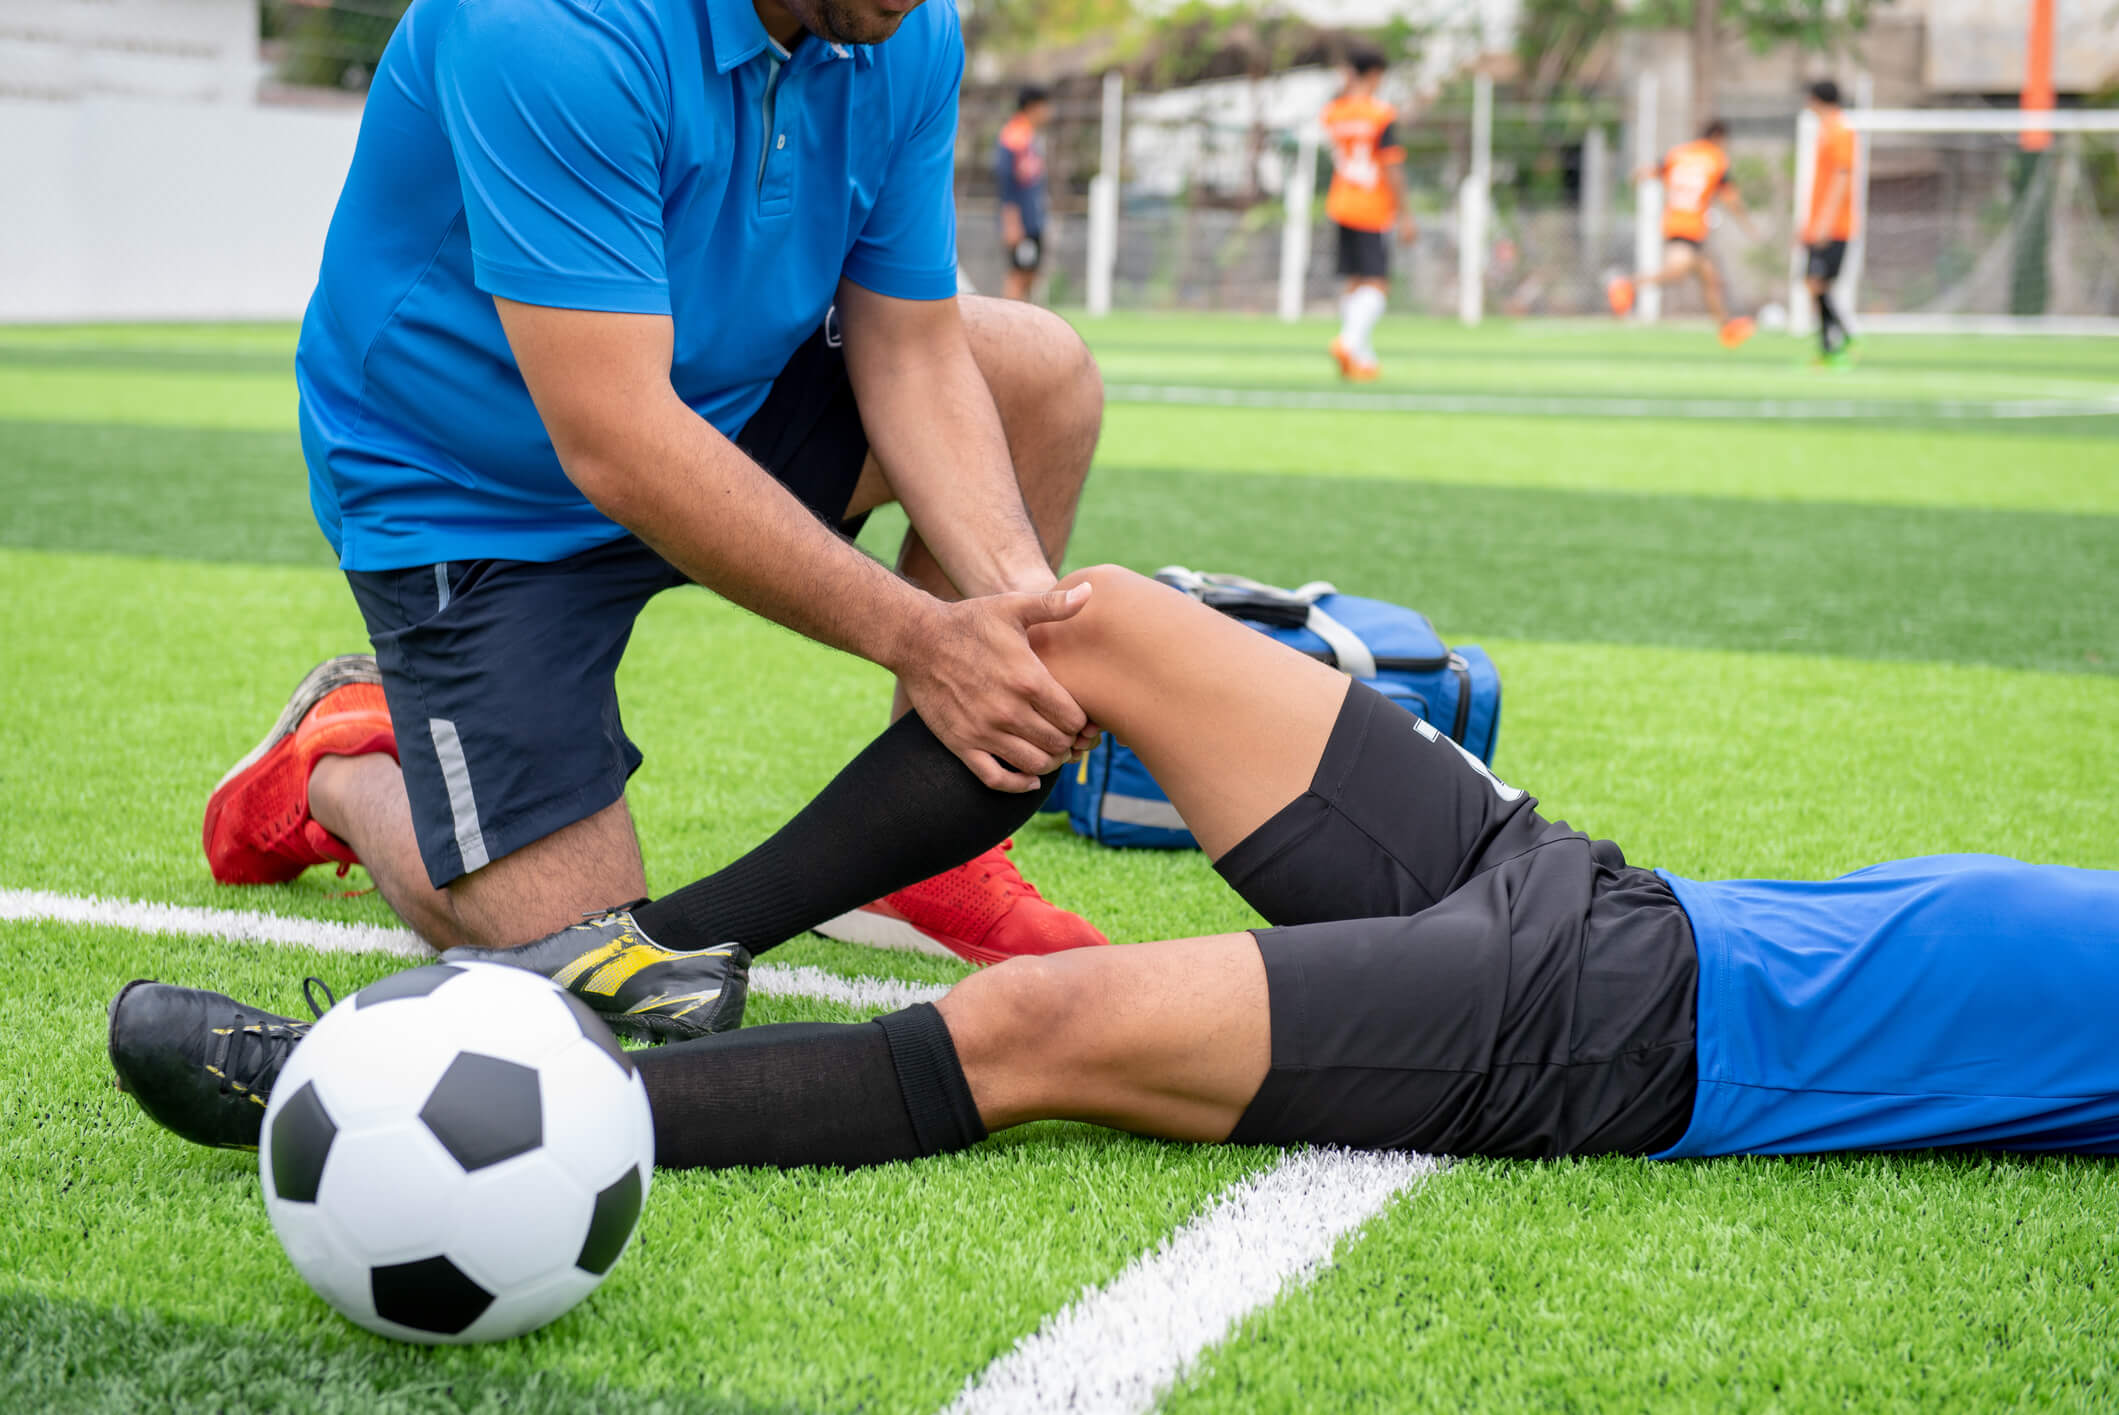 prevent further injuries from your sports with expert chiropractic help in midland michigan